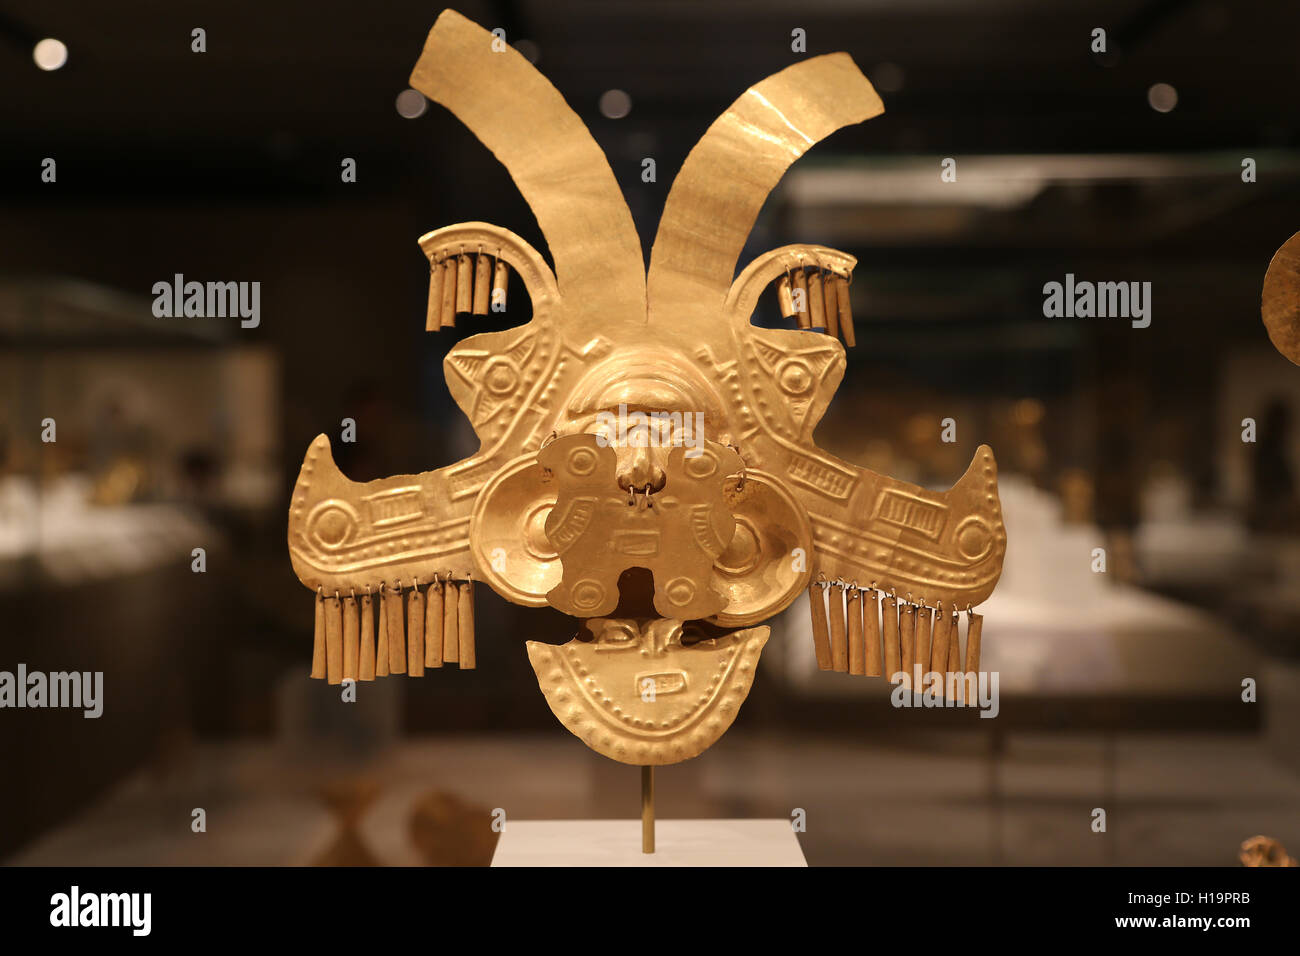 Headdress Ornament. Colombia. Yotoco (Calima), 1st-7th century. Gold. Metropolitan Museum of Art. Ny. Usa. - Stock Image